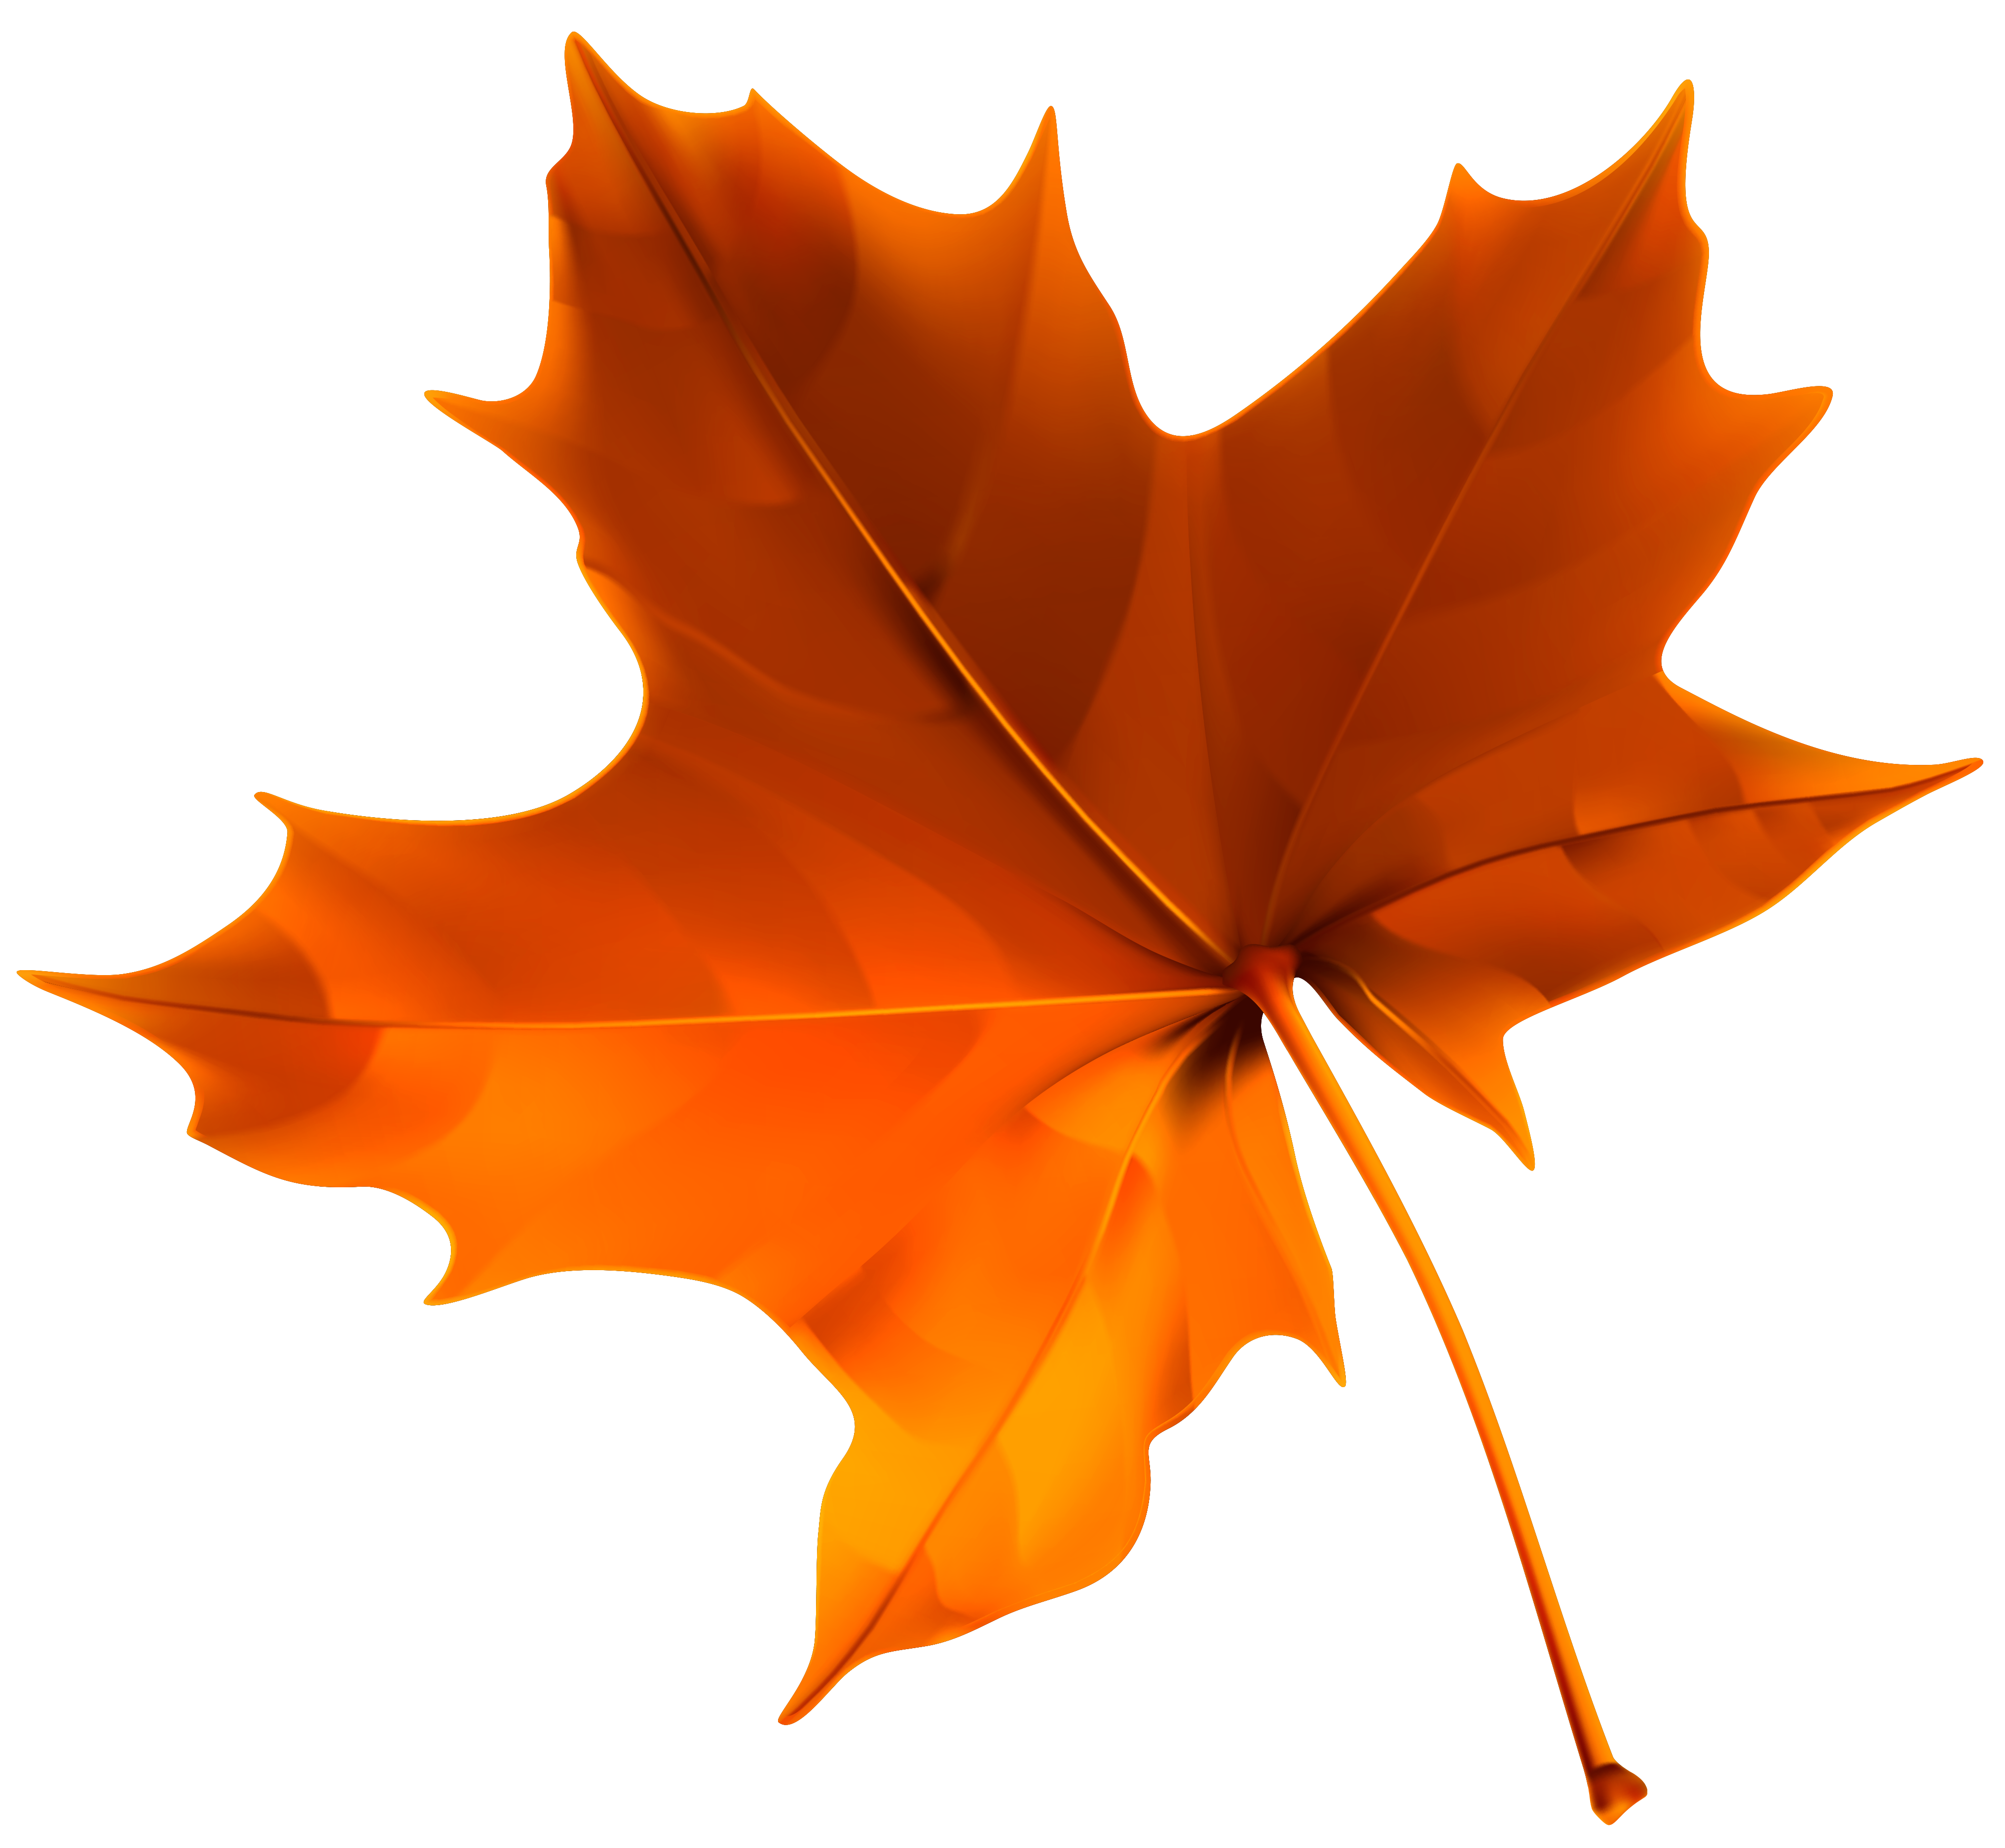 Autumn Red Leaf PNG Clipart Image | Gallery Yopriceville - High ...